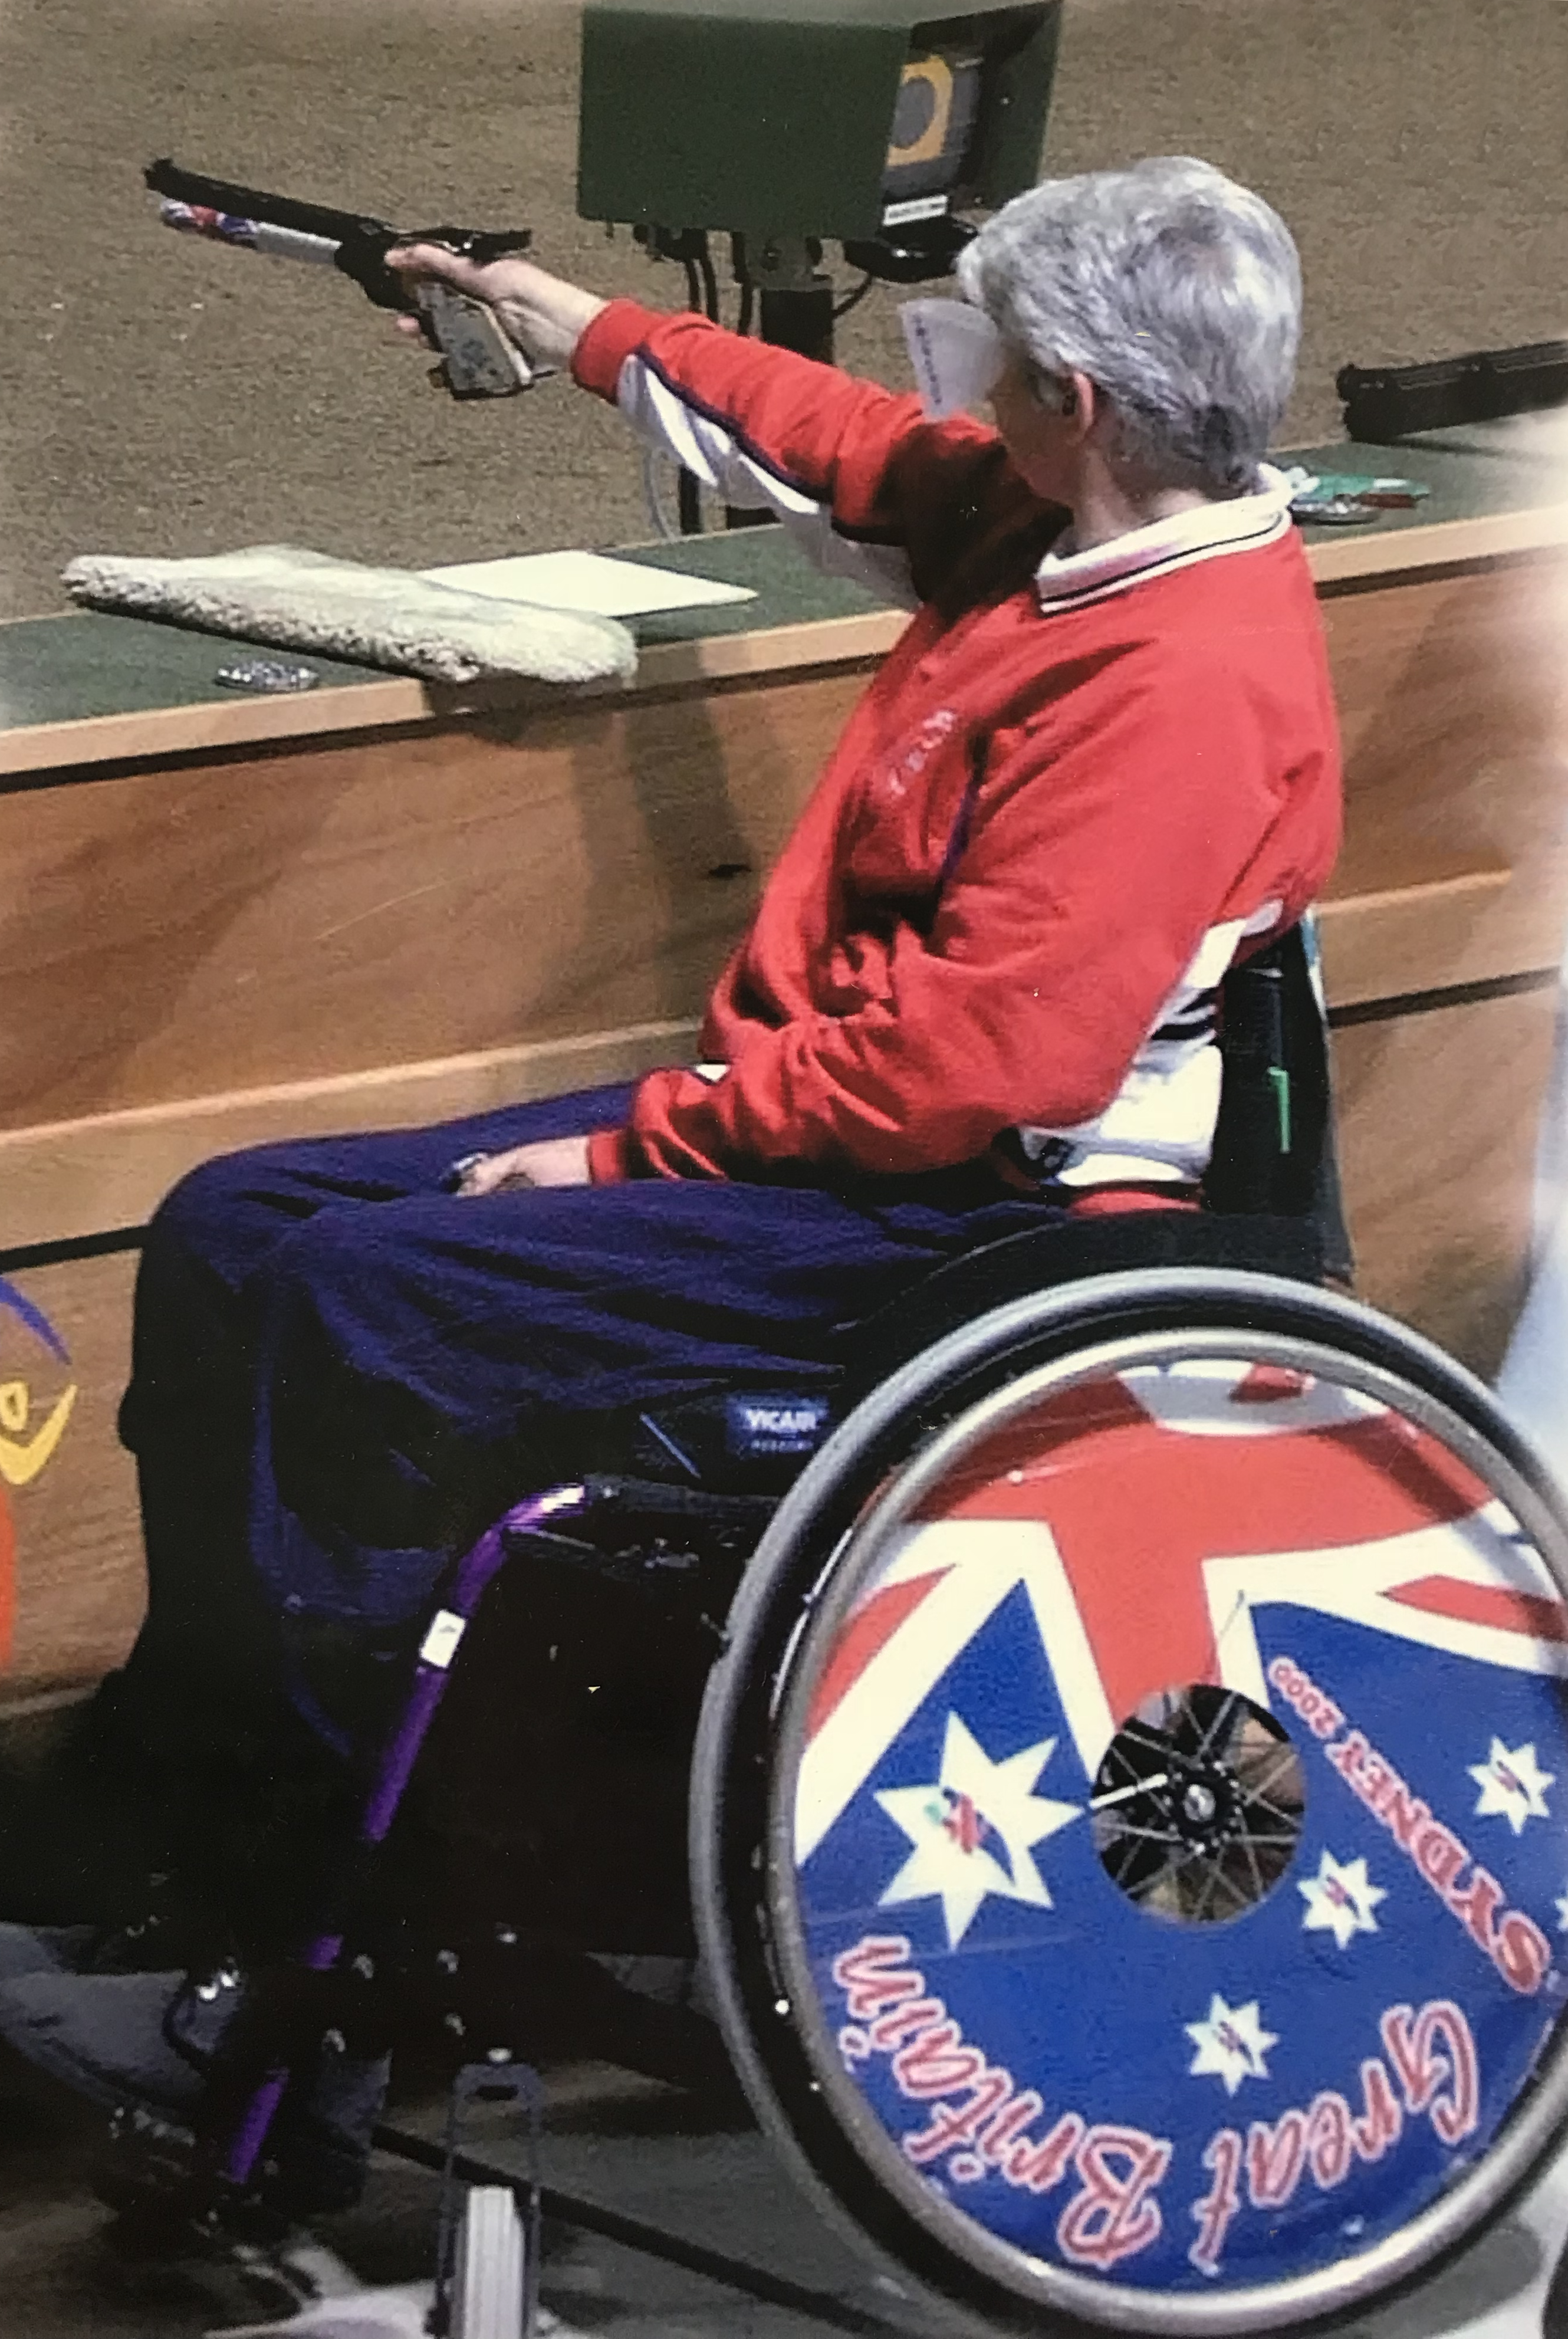 Isabel Newstead competing at the 2000 Sydney Games